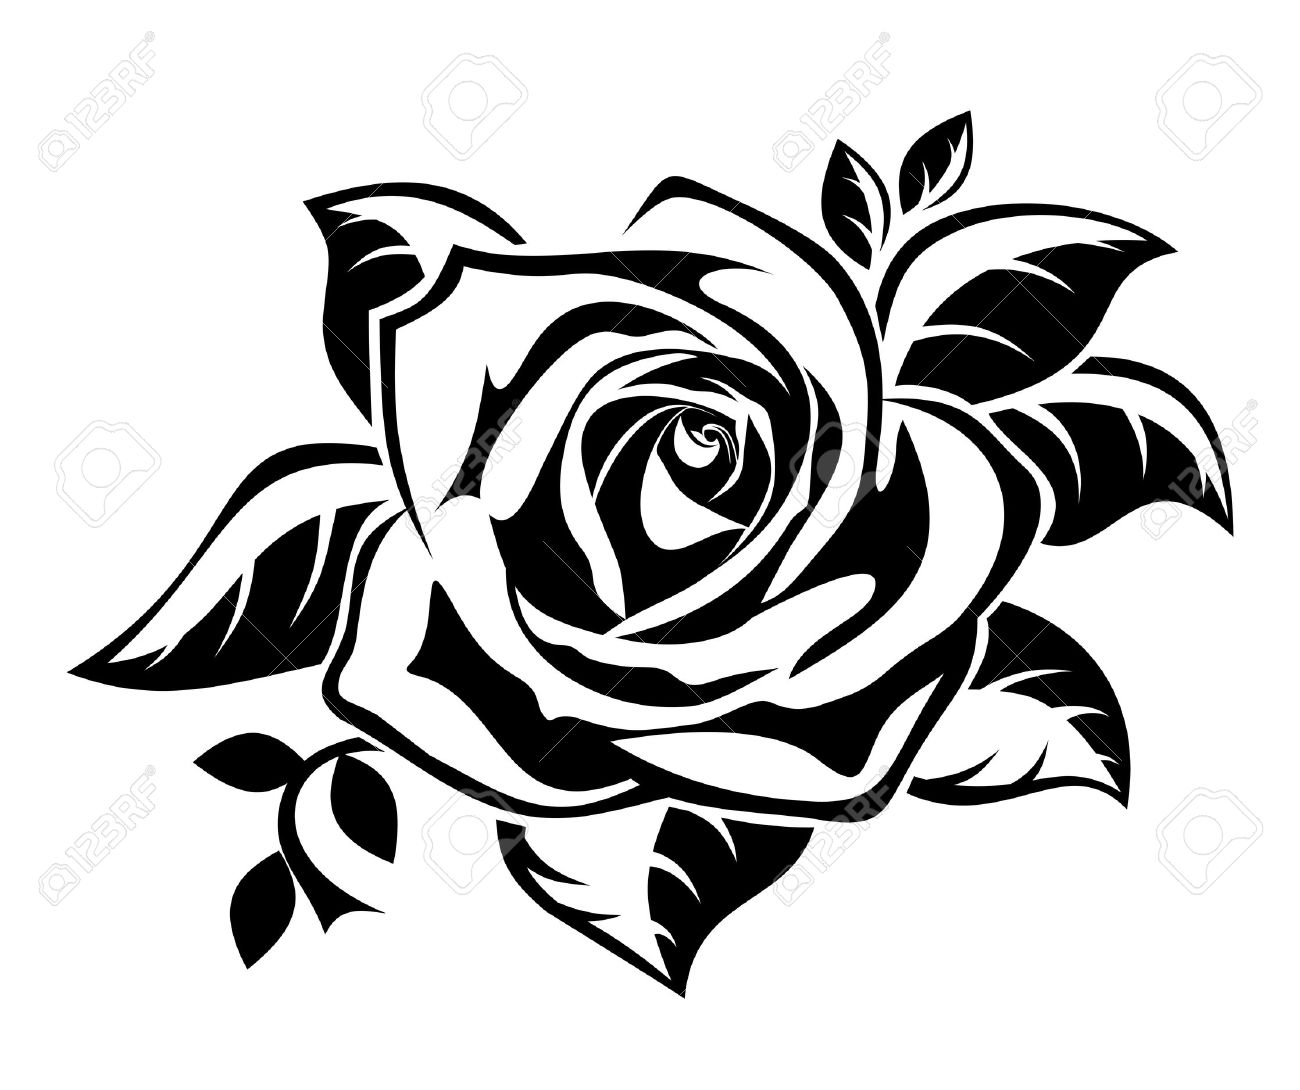 1300x1090 Black Silhouette Of Rose With Leaves. Royalty Free Cliparts